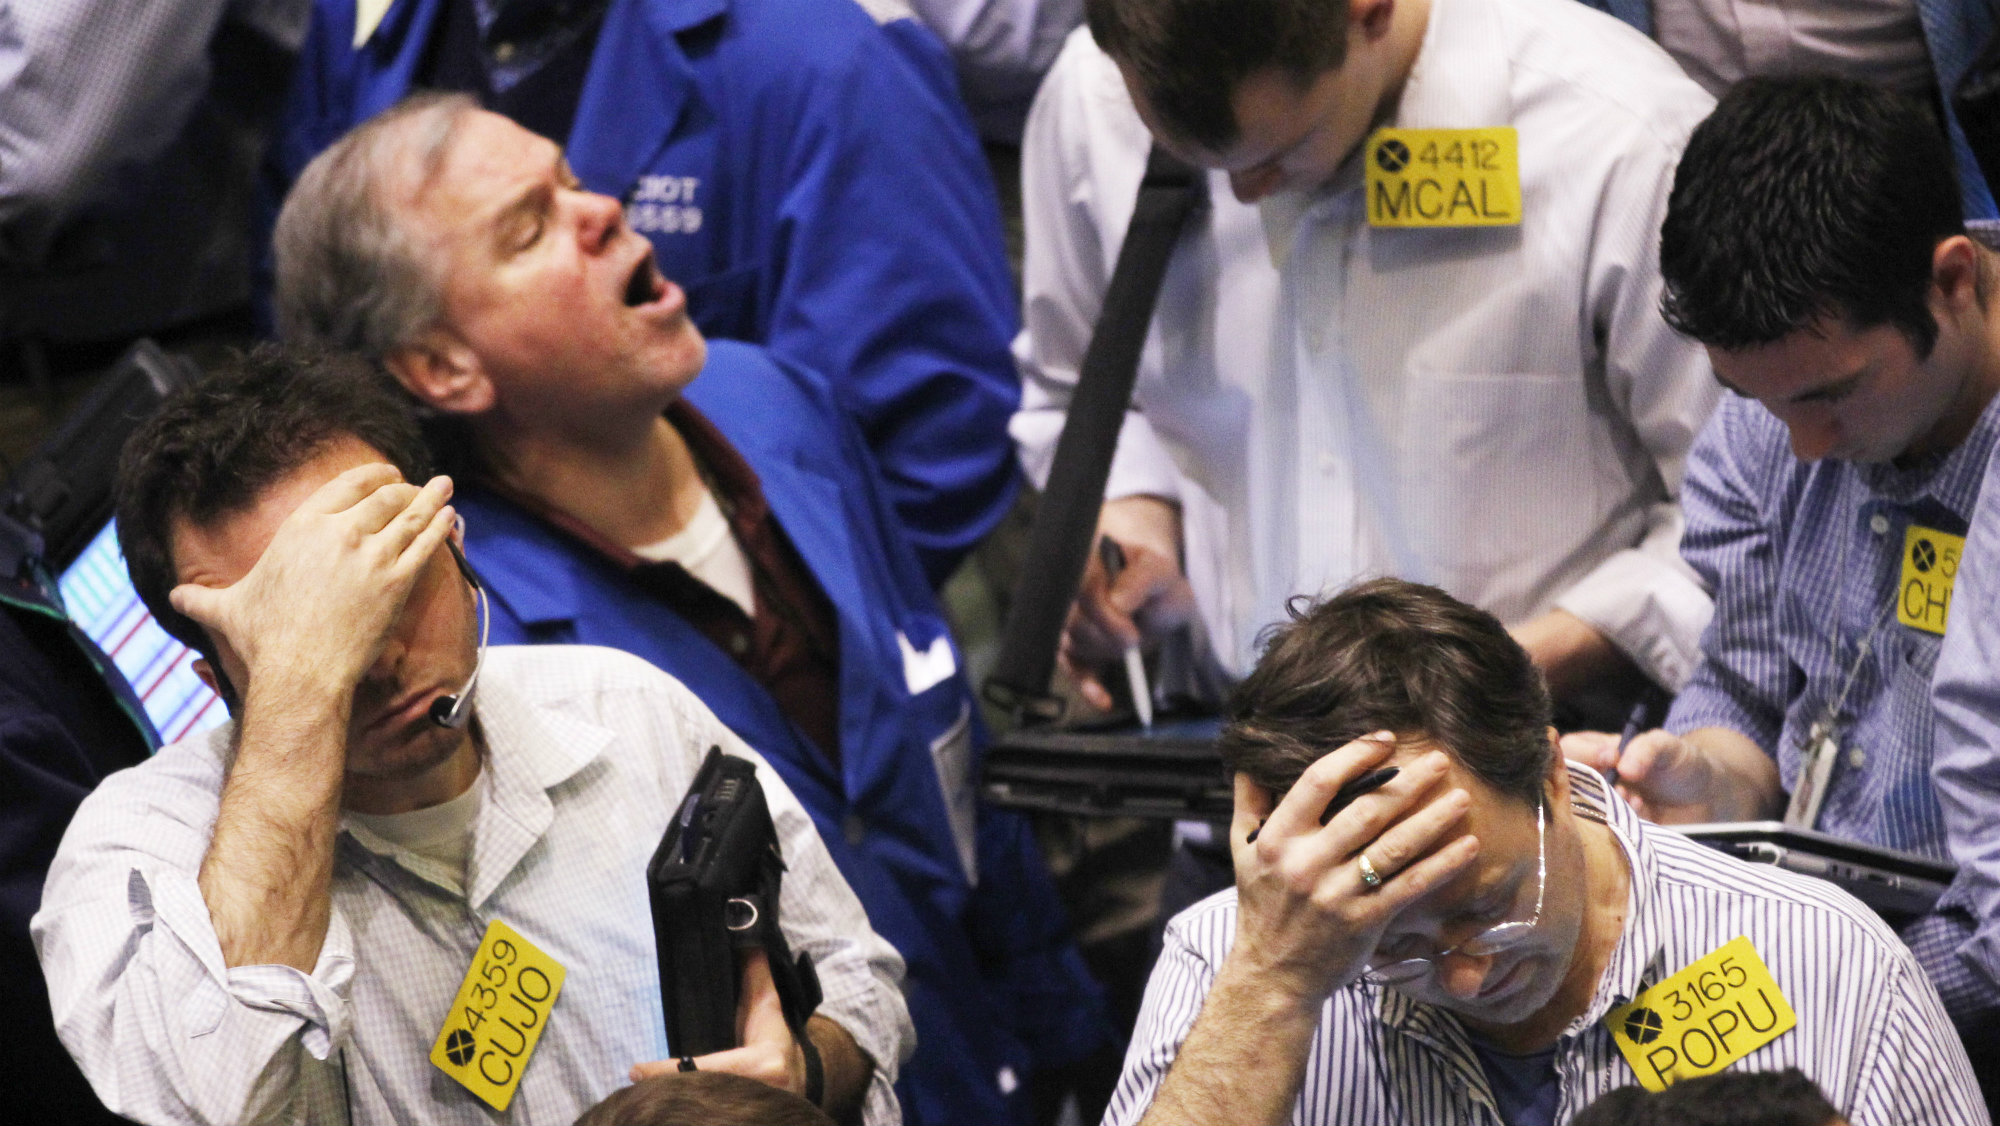 Traders work in the oil options pit on the floor of the New York Mercantile Exchange in New York City, February 22, 201